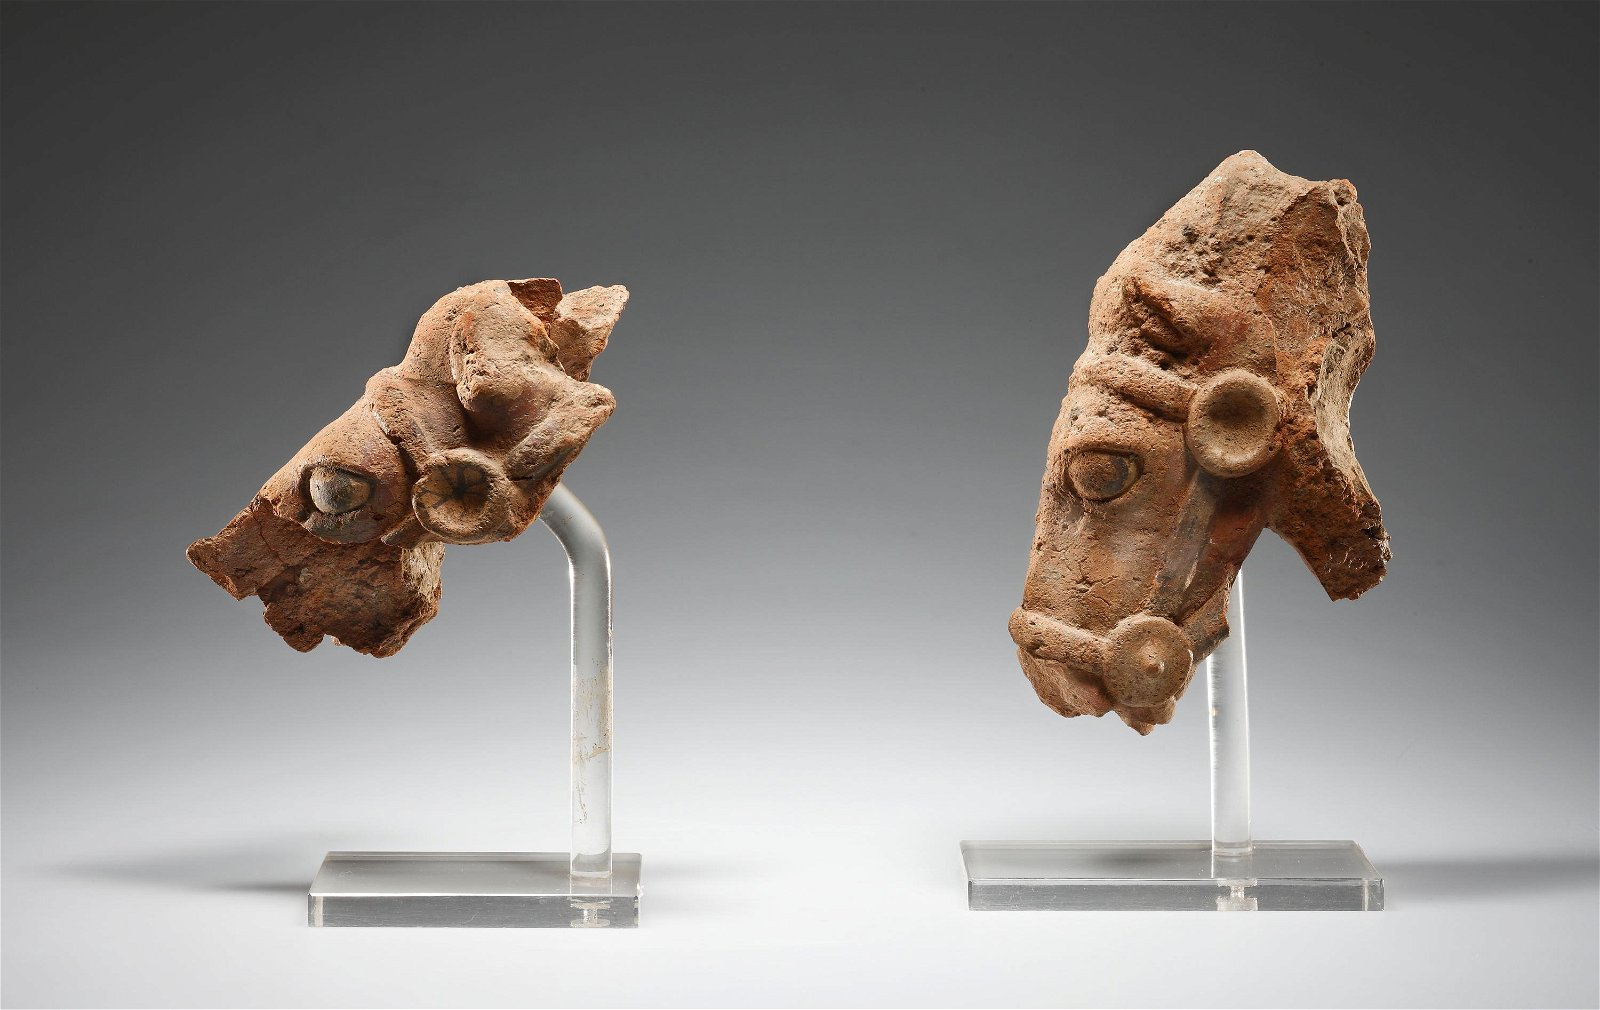 Two Fragments of Horses' Heads